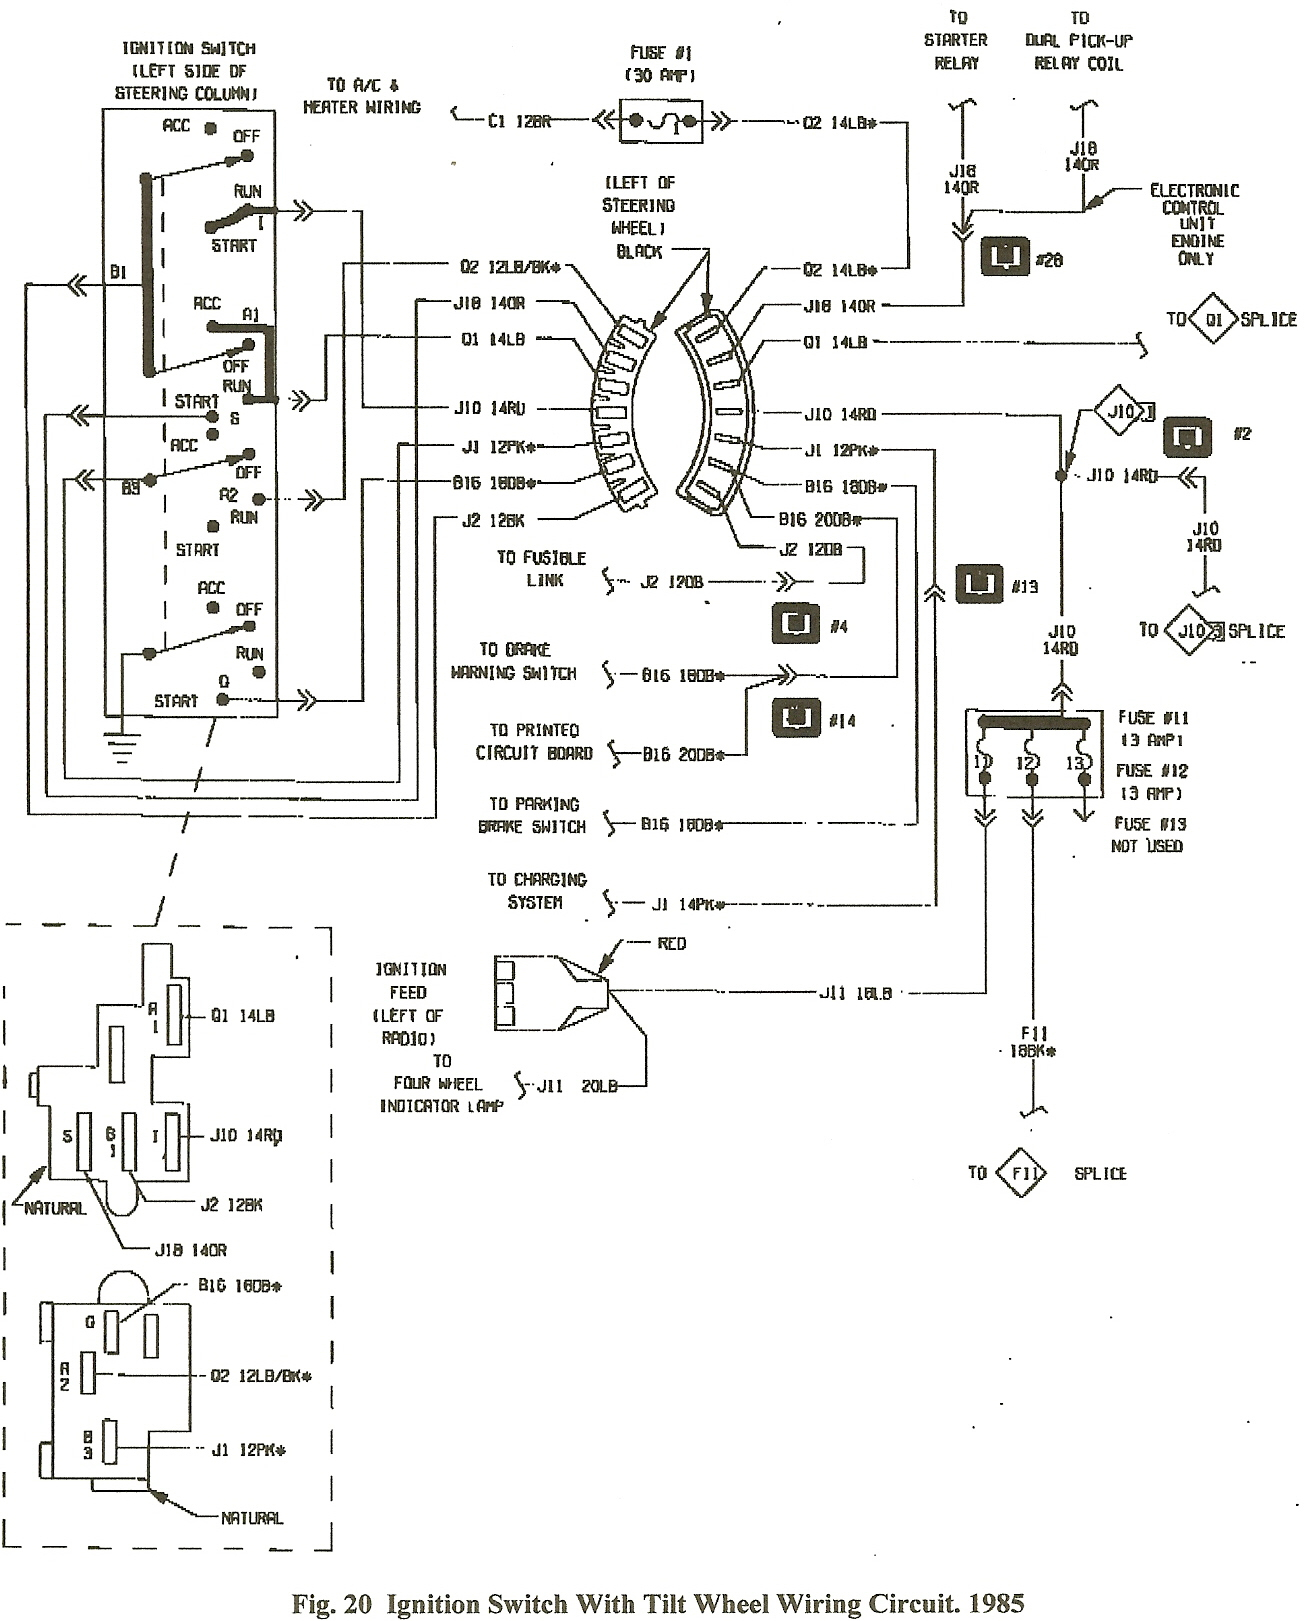 1985 Dodge Ram Wiring Diagram - Data Wiring Diagram Site - 1999 Dodge Ram 1500 Trailer Wiring Diagram